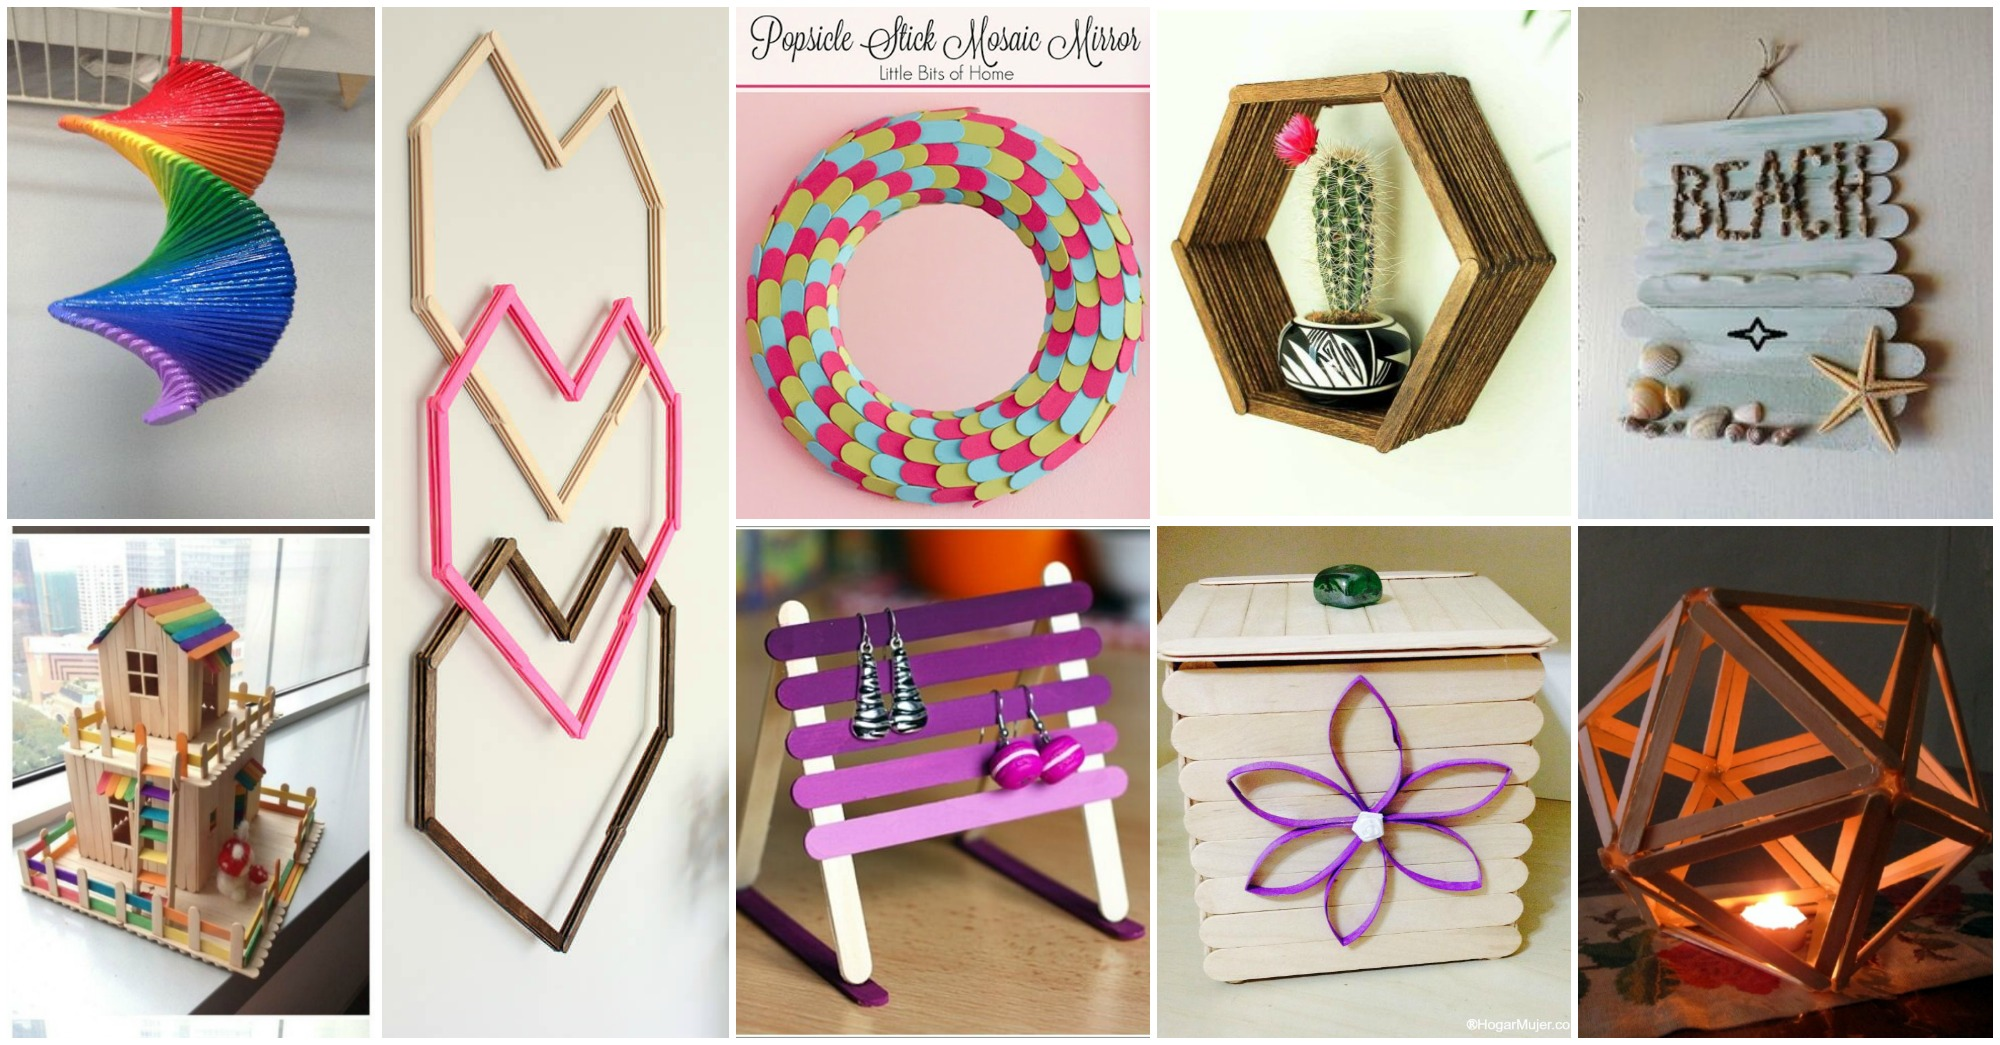 13 diy popsicle sticks home decor ideas for Home design ideas handmade